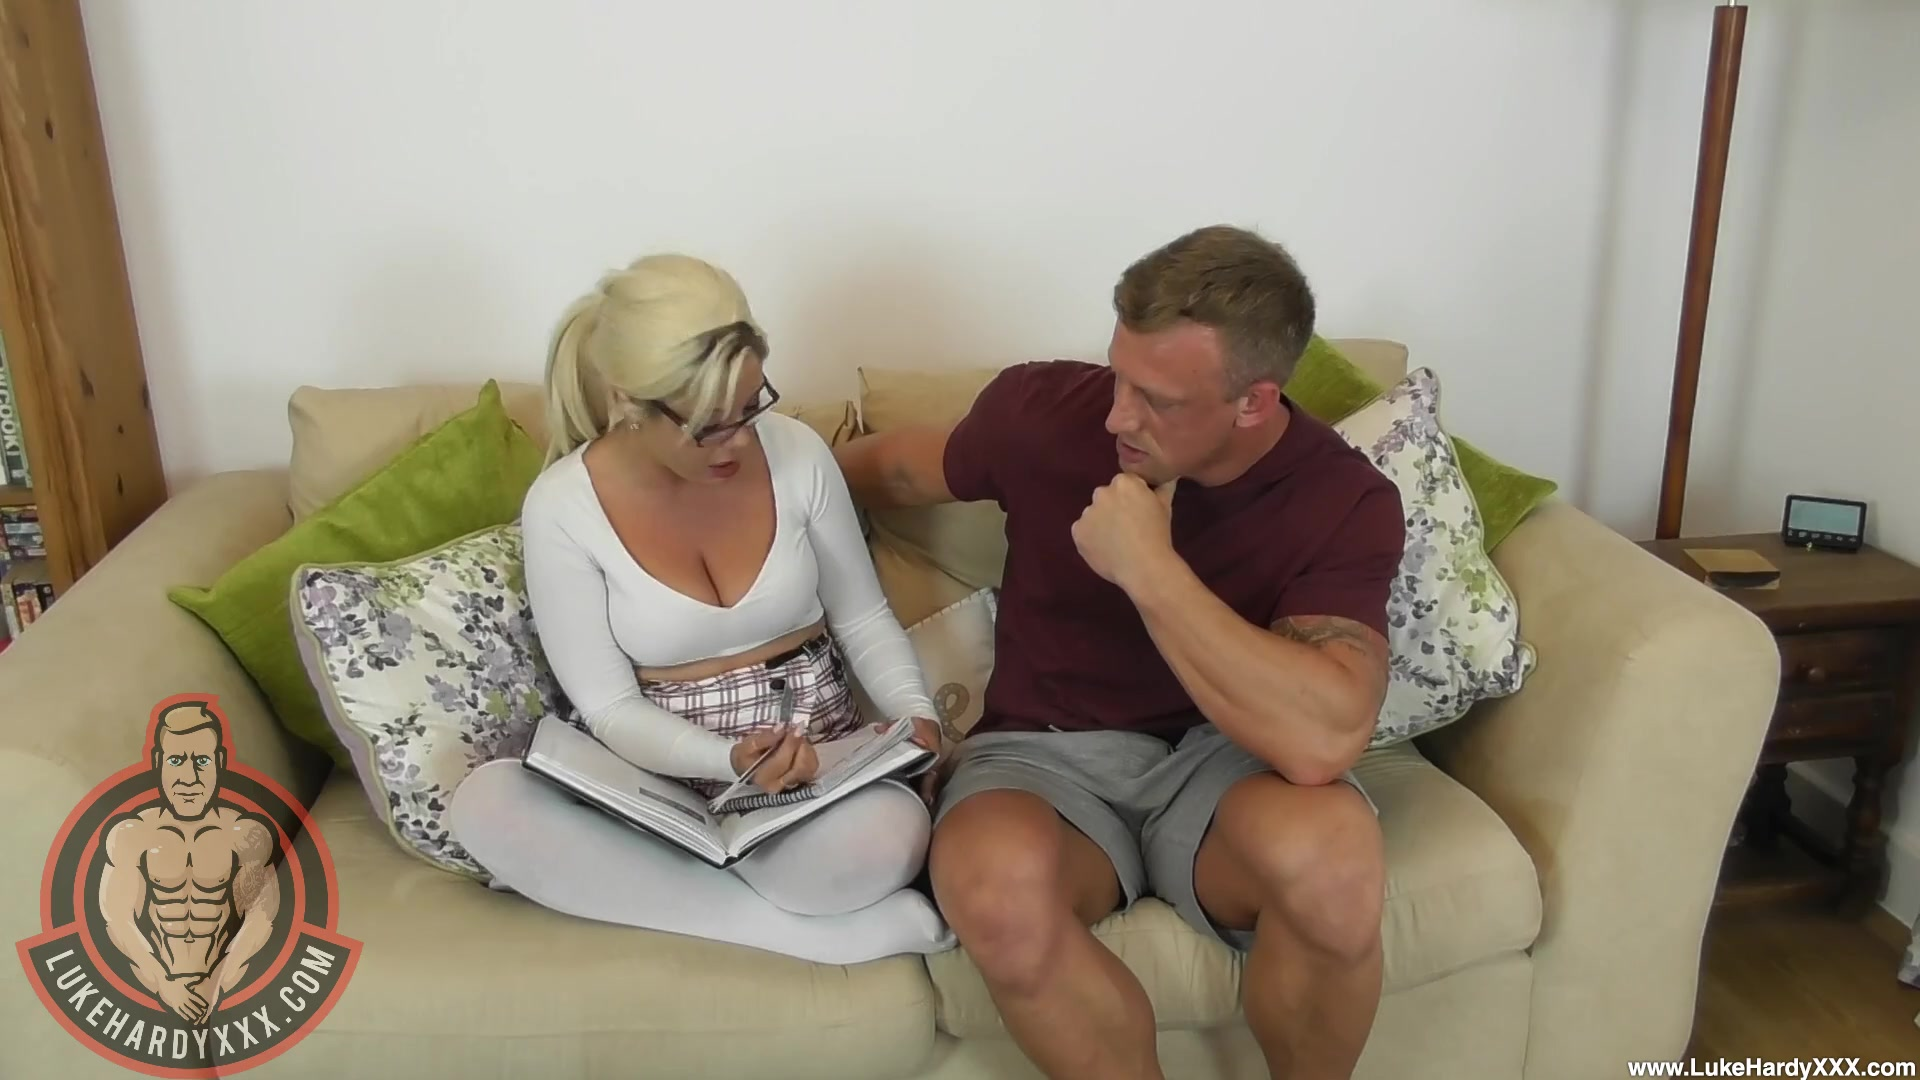 Stepmom Camilla Creampie refuses to act properly when feeling randy